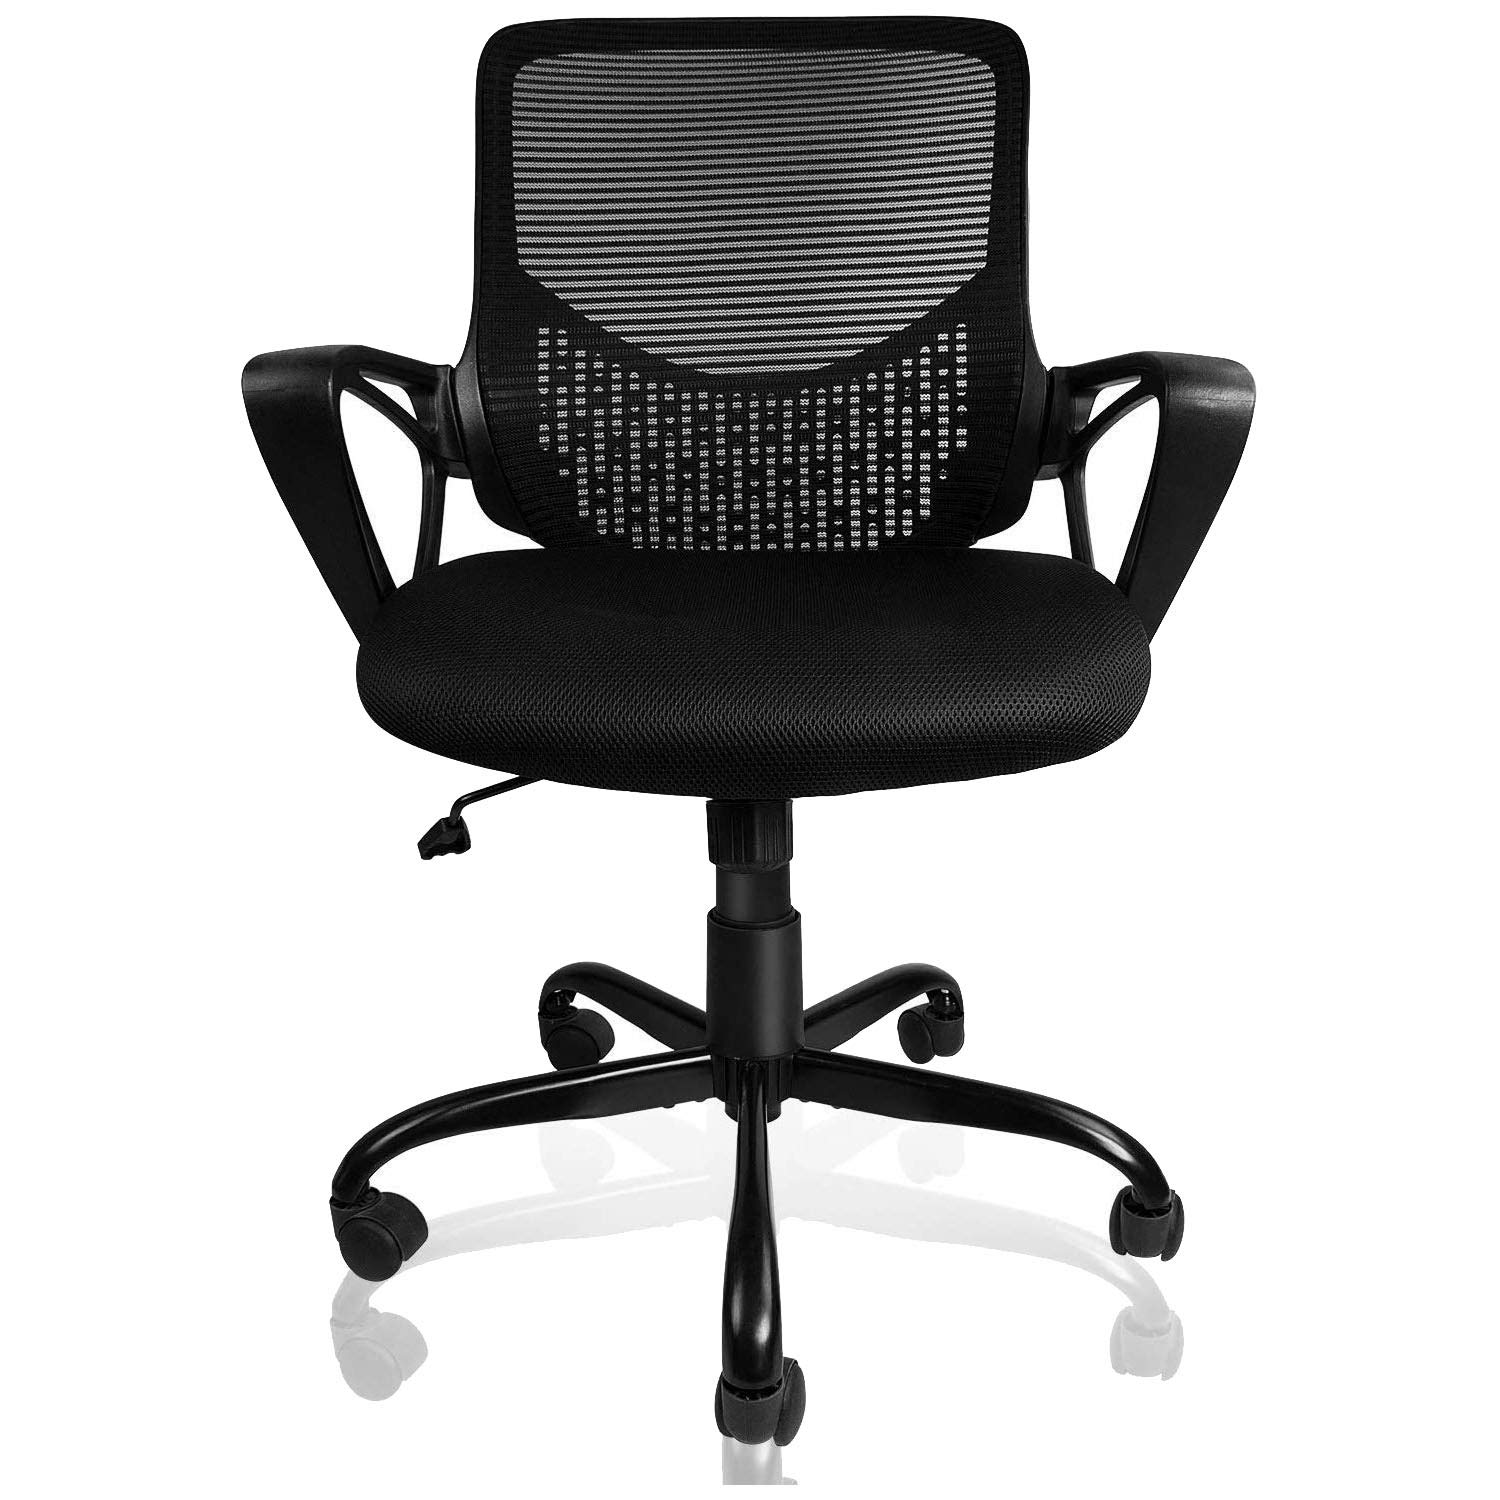 SmugOffice Office Chair, Computer Desk Chairs for Conference Room Home Office with Armrests, Ergonomic Lumbar Support Comfortable Mesh Task Chair, Black